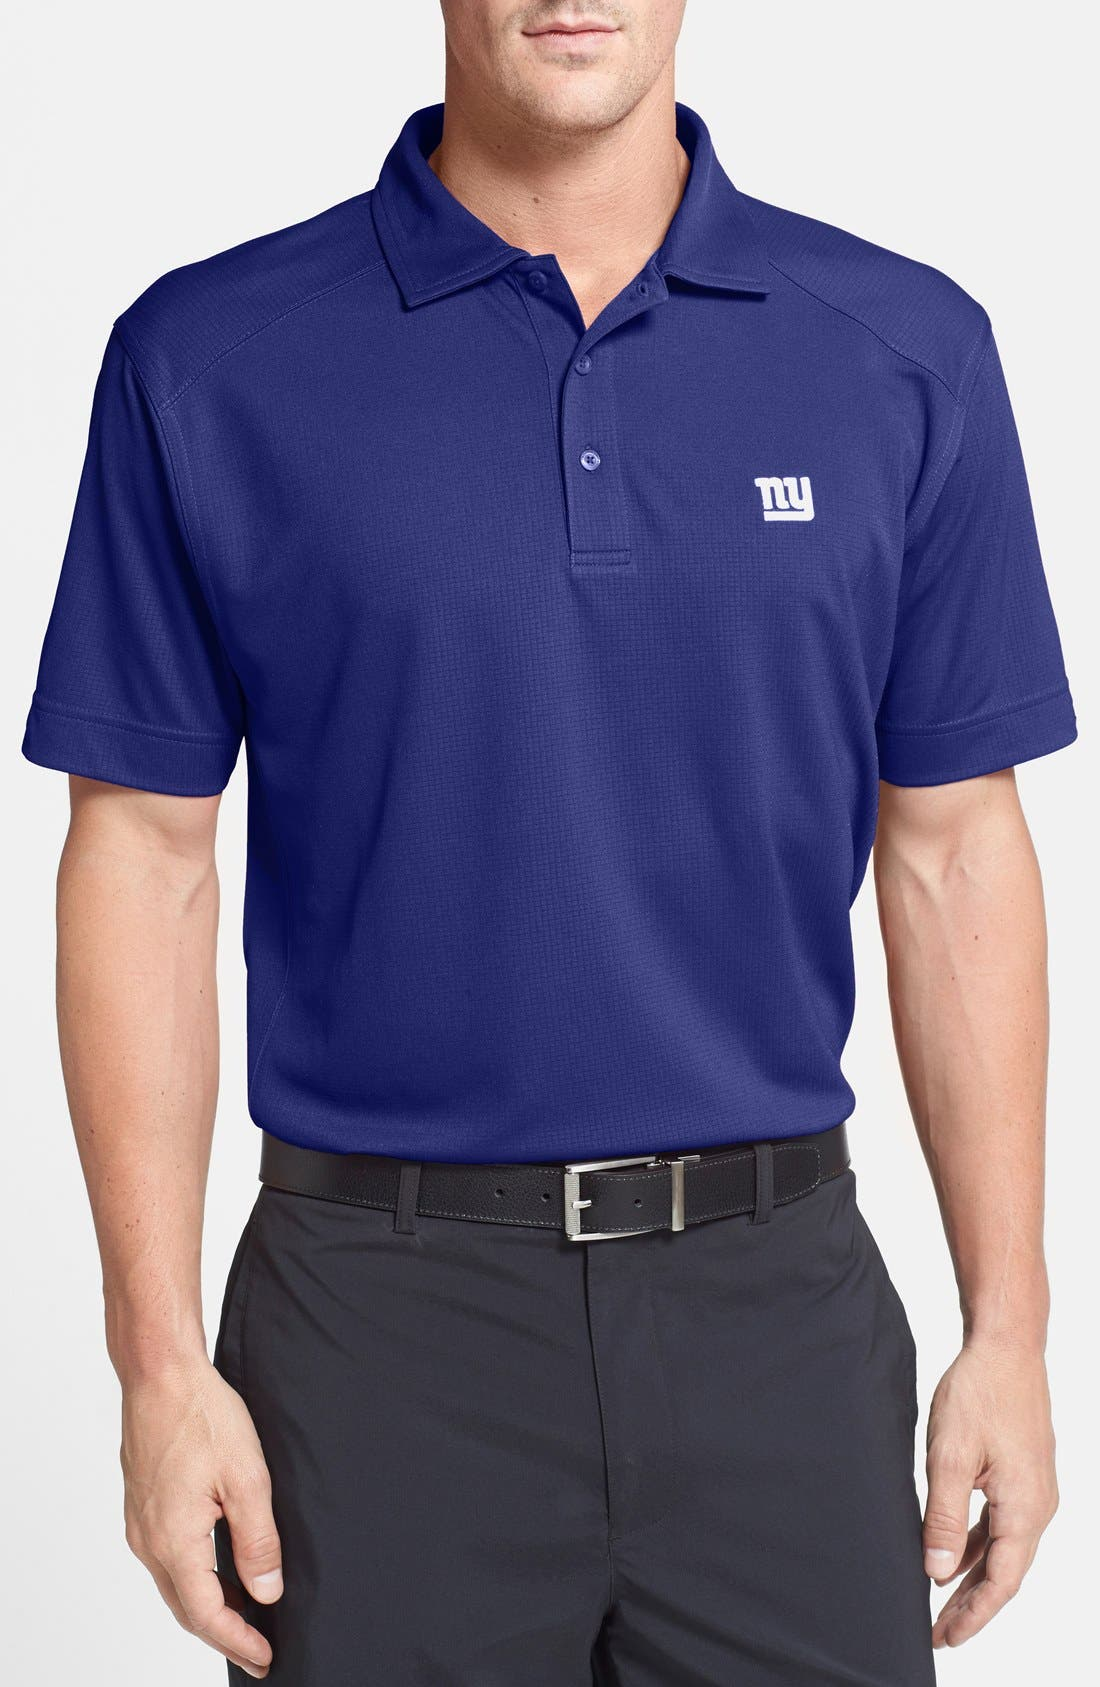 Alternate Image 1 Selected - Cutter & Buck 'New York Giants - Genre' DryTec Moisture Wicking Polo